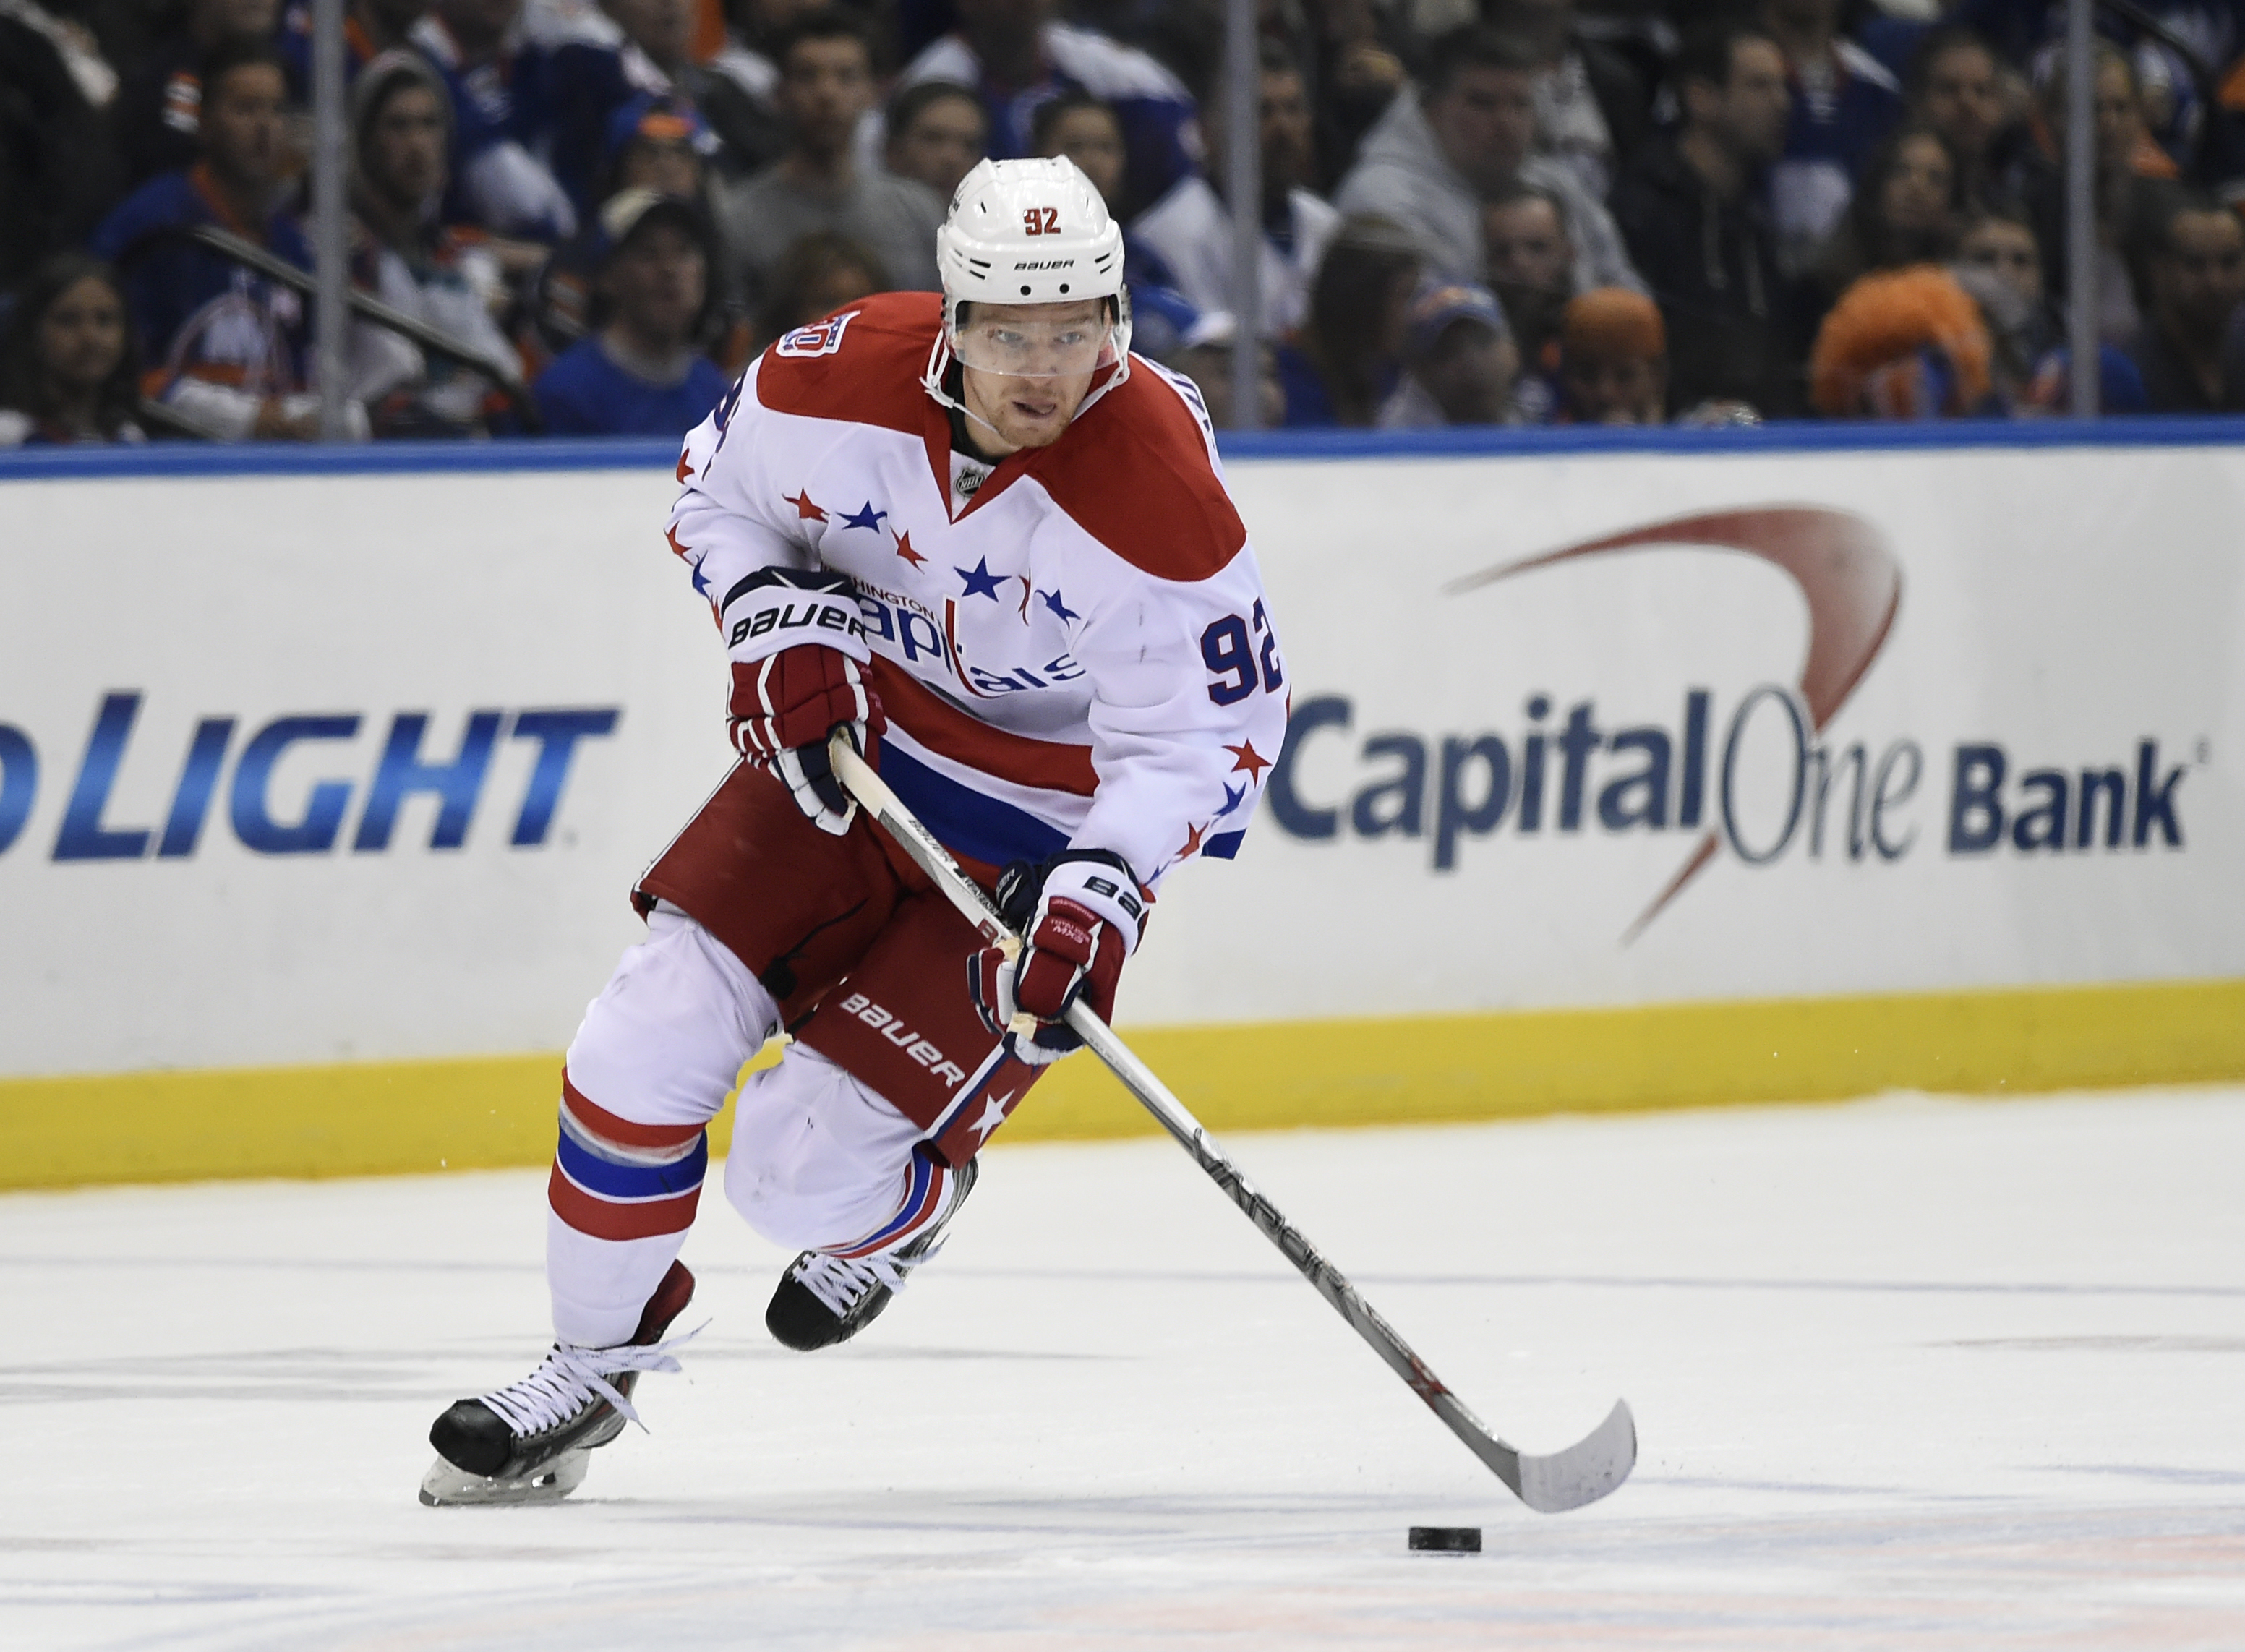 Washington Capitals center Evgeny Kuznetsov (92) drives the puck down ice in the first period of Game 6 of a first-round NHL Stanley Cup hockey playoffs against the New York Islanders at Nassau Coliseum on Saturday, April 25, 2015, in Uniondale, N.Y. (AP